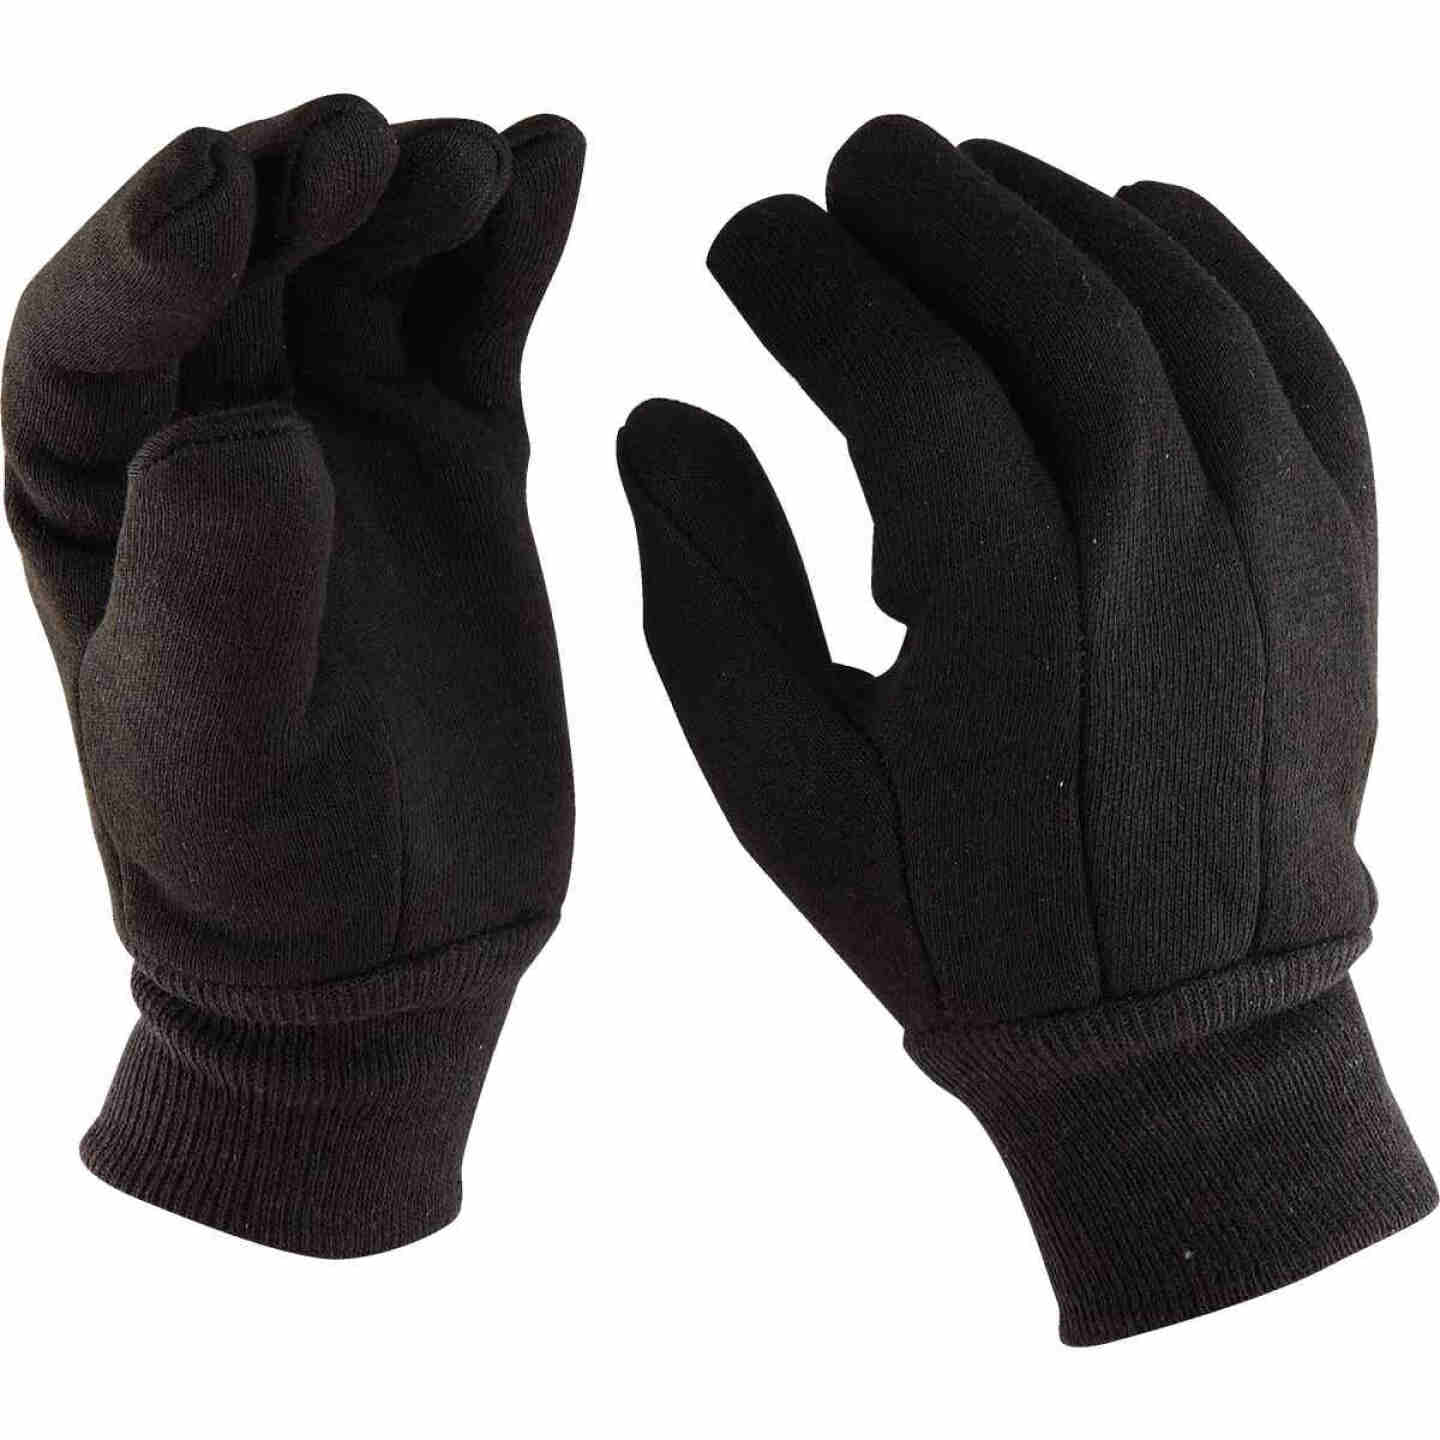 Do it Men's Large Lined Jersey Work Glove with Knit Wrist Image 3